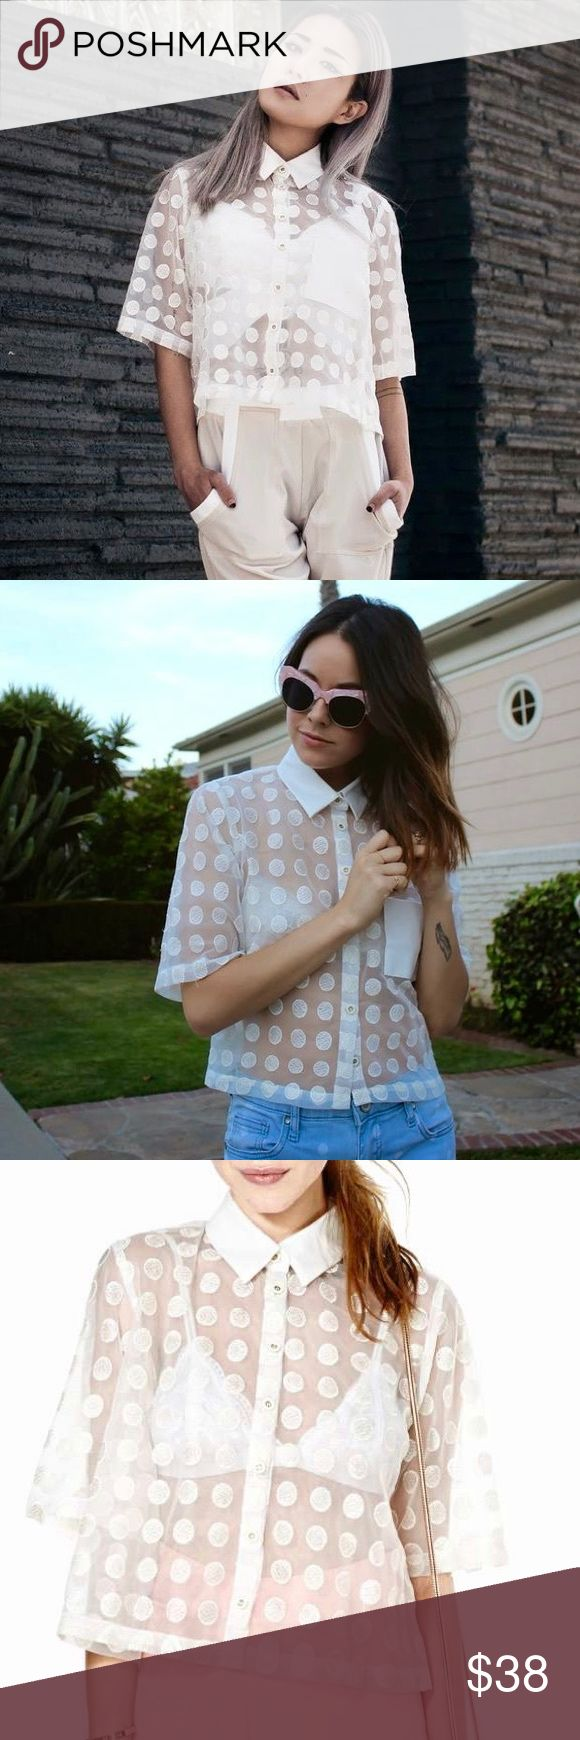 NASTY GAL POLKA DOT CROP TOP This adorable top is sheer with patched polka dots😍 the pocket and collar are leather material! Worn once to a festival but got it very dirty there 😅 the collar has some gray marks! I will post more pictures of that very soon but still a beautiful piece 🔥 Nasty Gal Tops Crop Tops